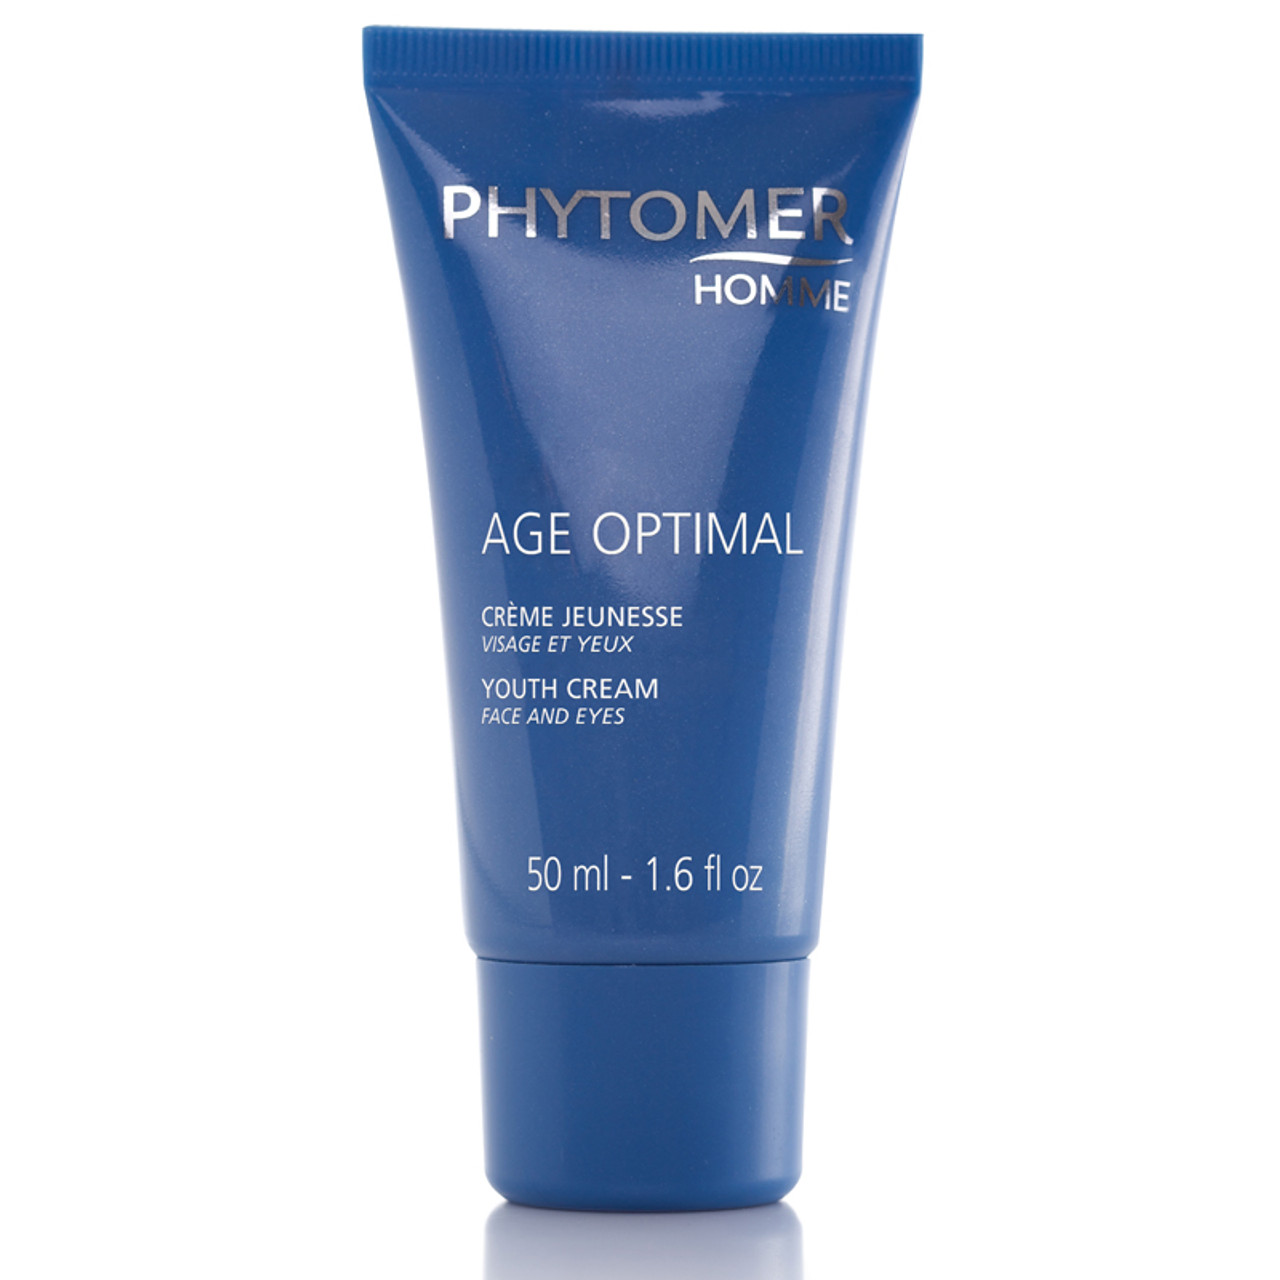 Phytomer Homme Age Optimal Youth Cream Face And Eyes BeautifiedYou.com